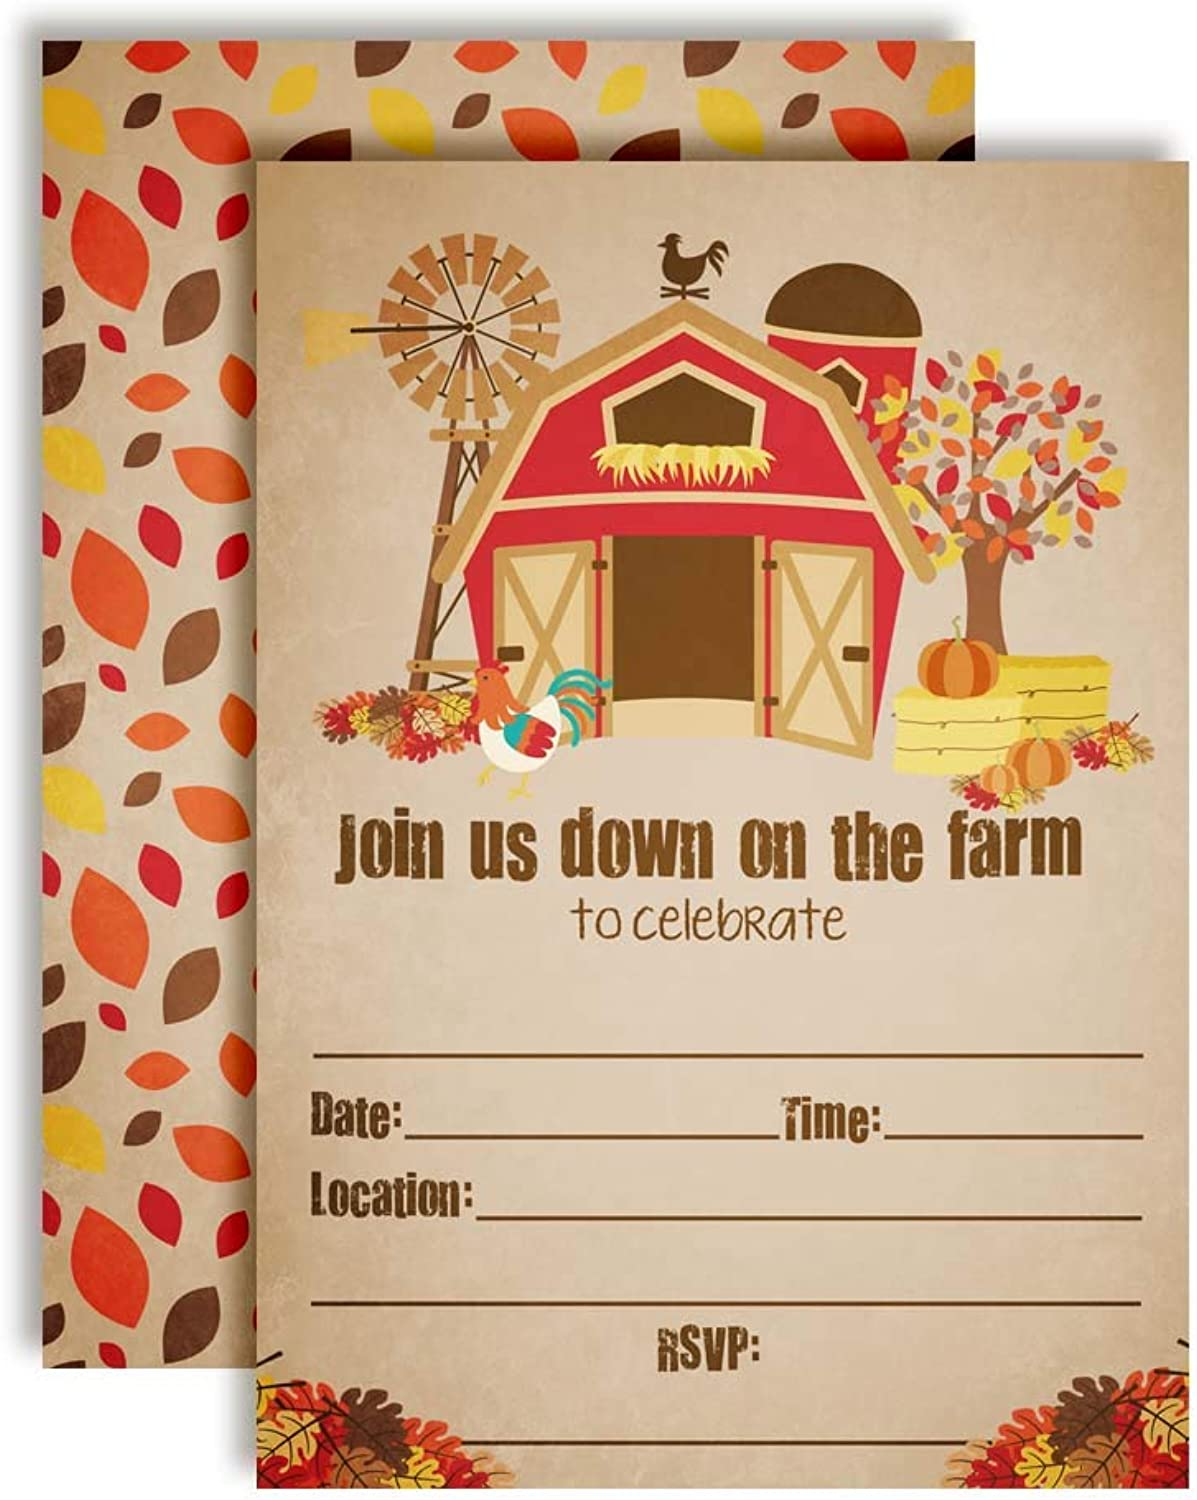 Rustic Old Fashioned Barn Fall & Autumn Barnyard Farm Birthday Party Invitations, 20 5 x7  Fill in Cards with Twenty White Envelopes by AmandaCreation